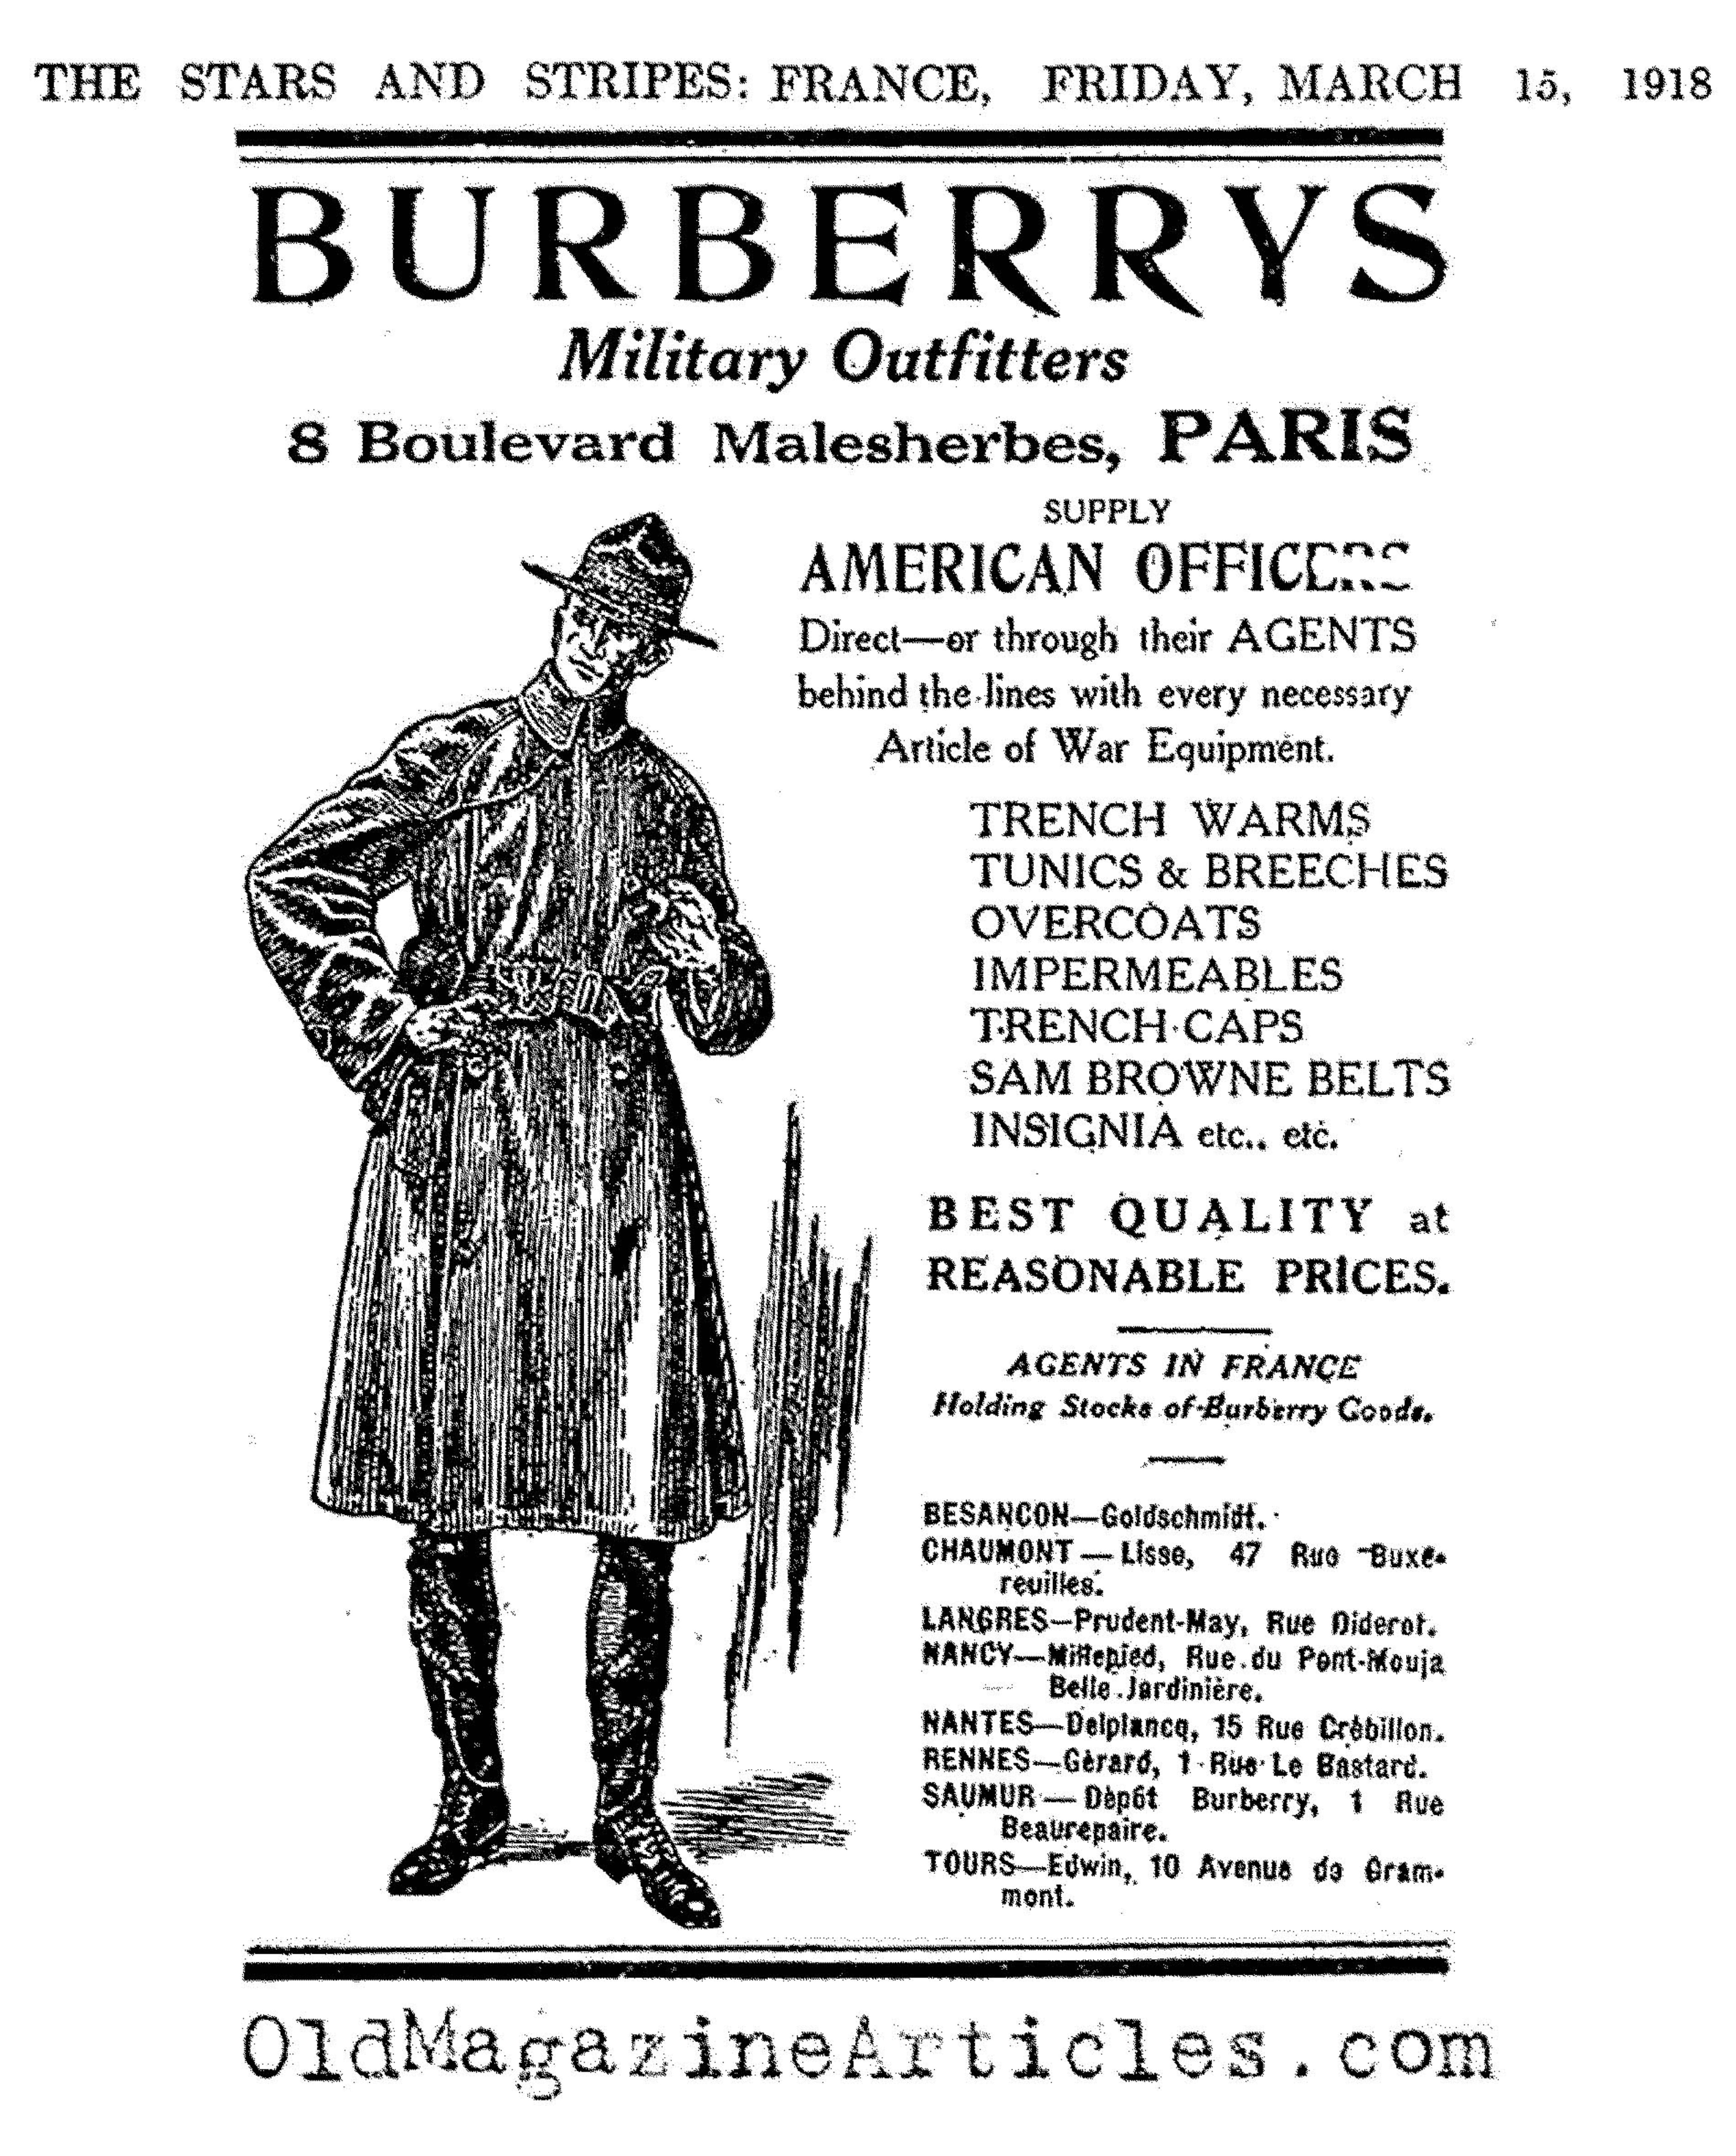 The Famous One The Burberry Trench Coat The Stars and Stripes 1918